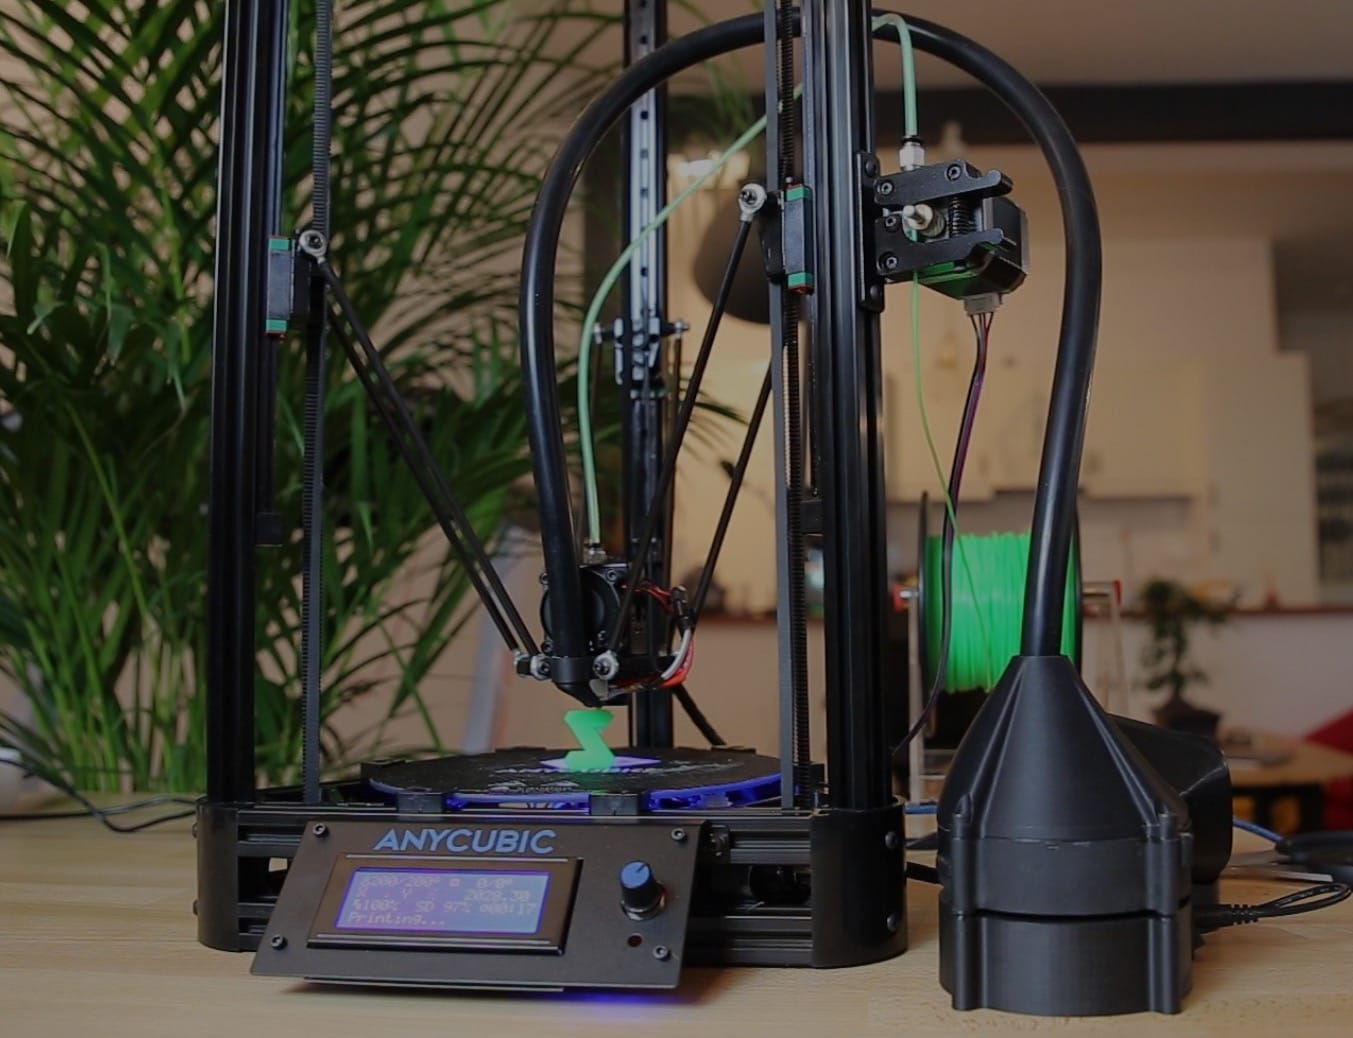 The Zimpure air filtration 3D printer accessory